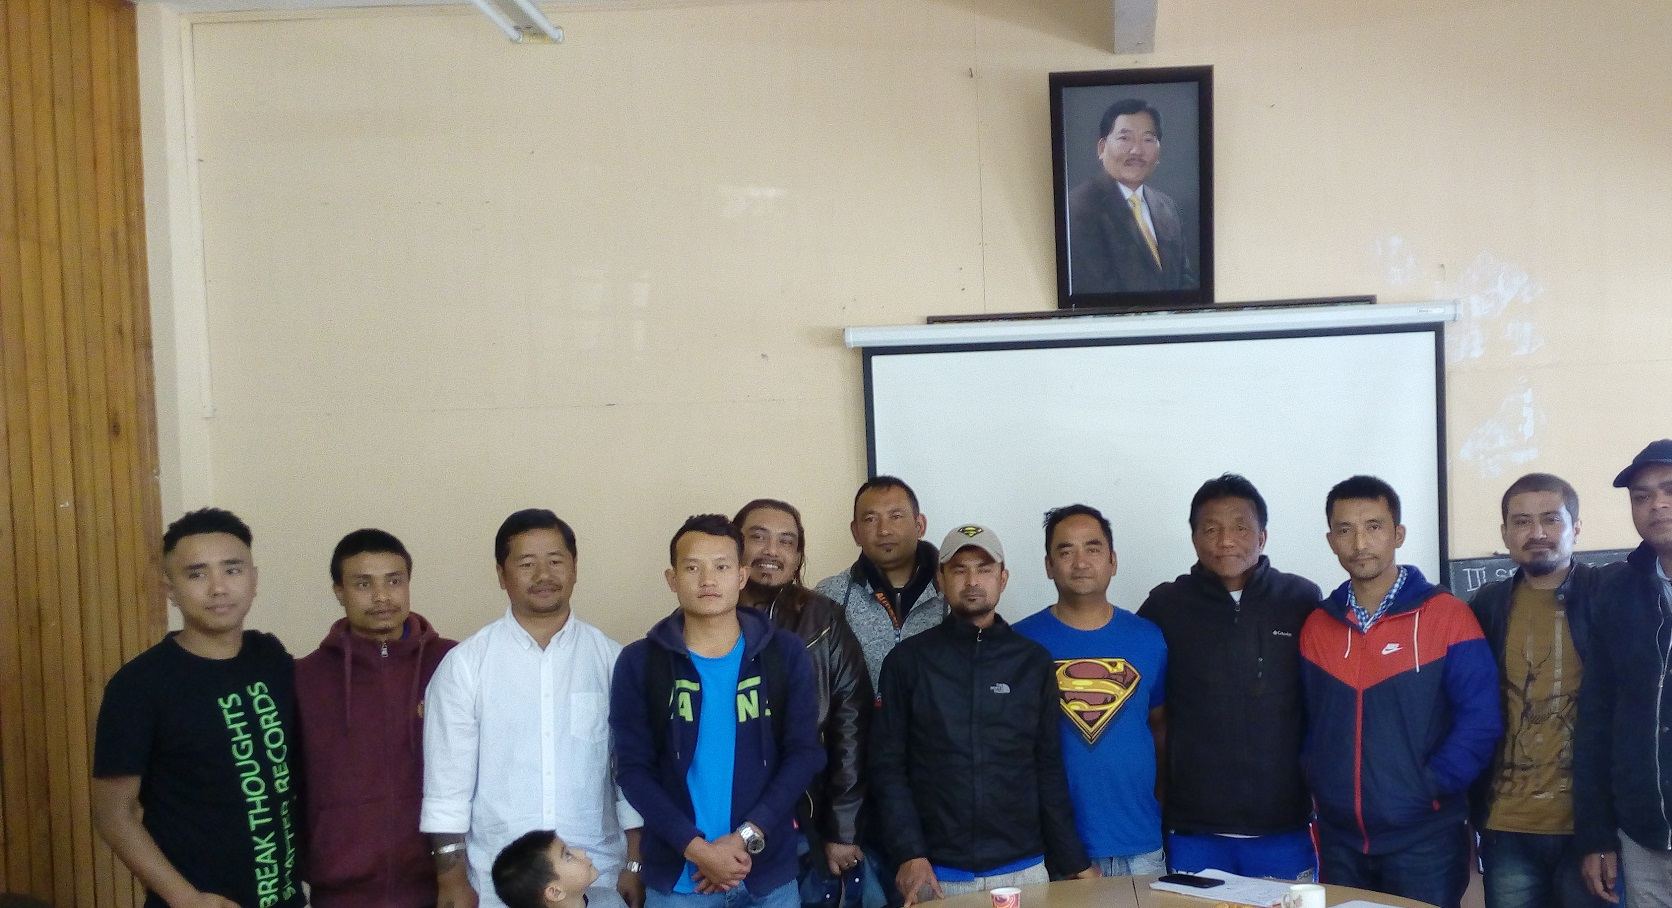 Serenity Cup Football tournament organisers addressing a press conference in Gangtok on Friday.